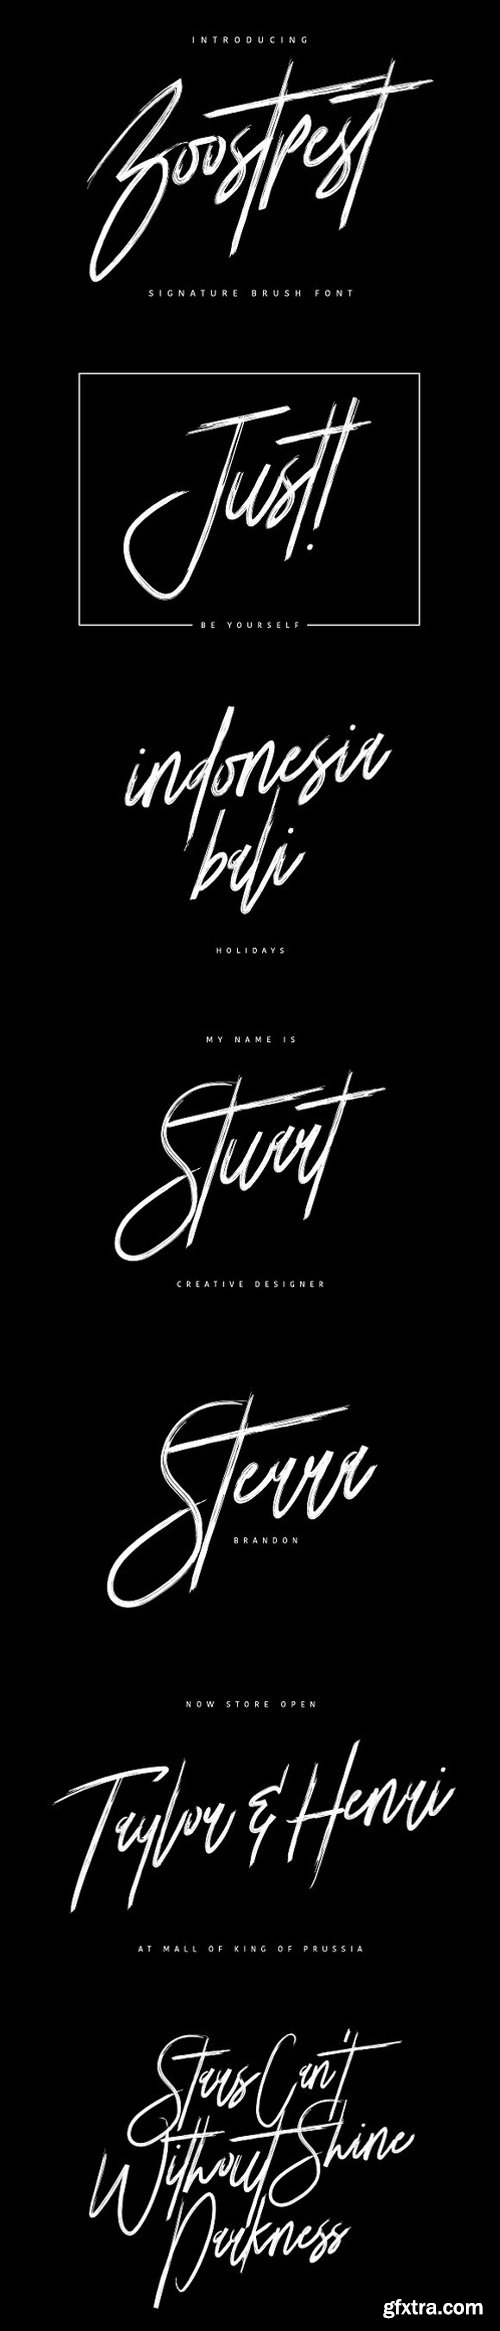 CM - Boostpest Signature Brush Font 1530236